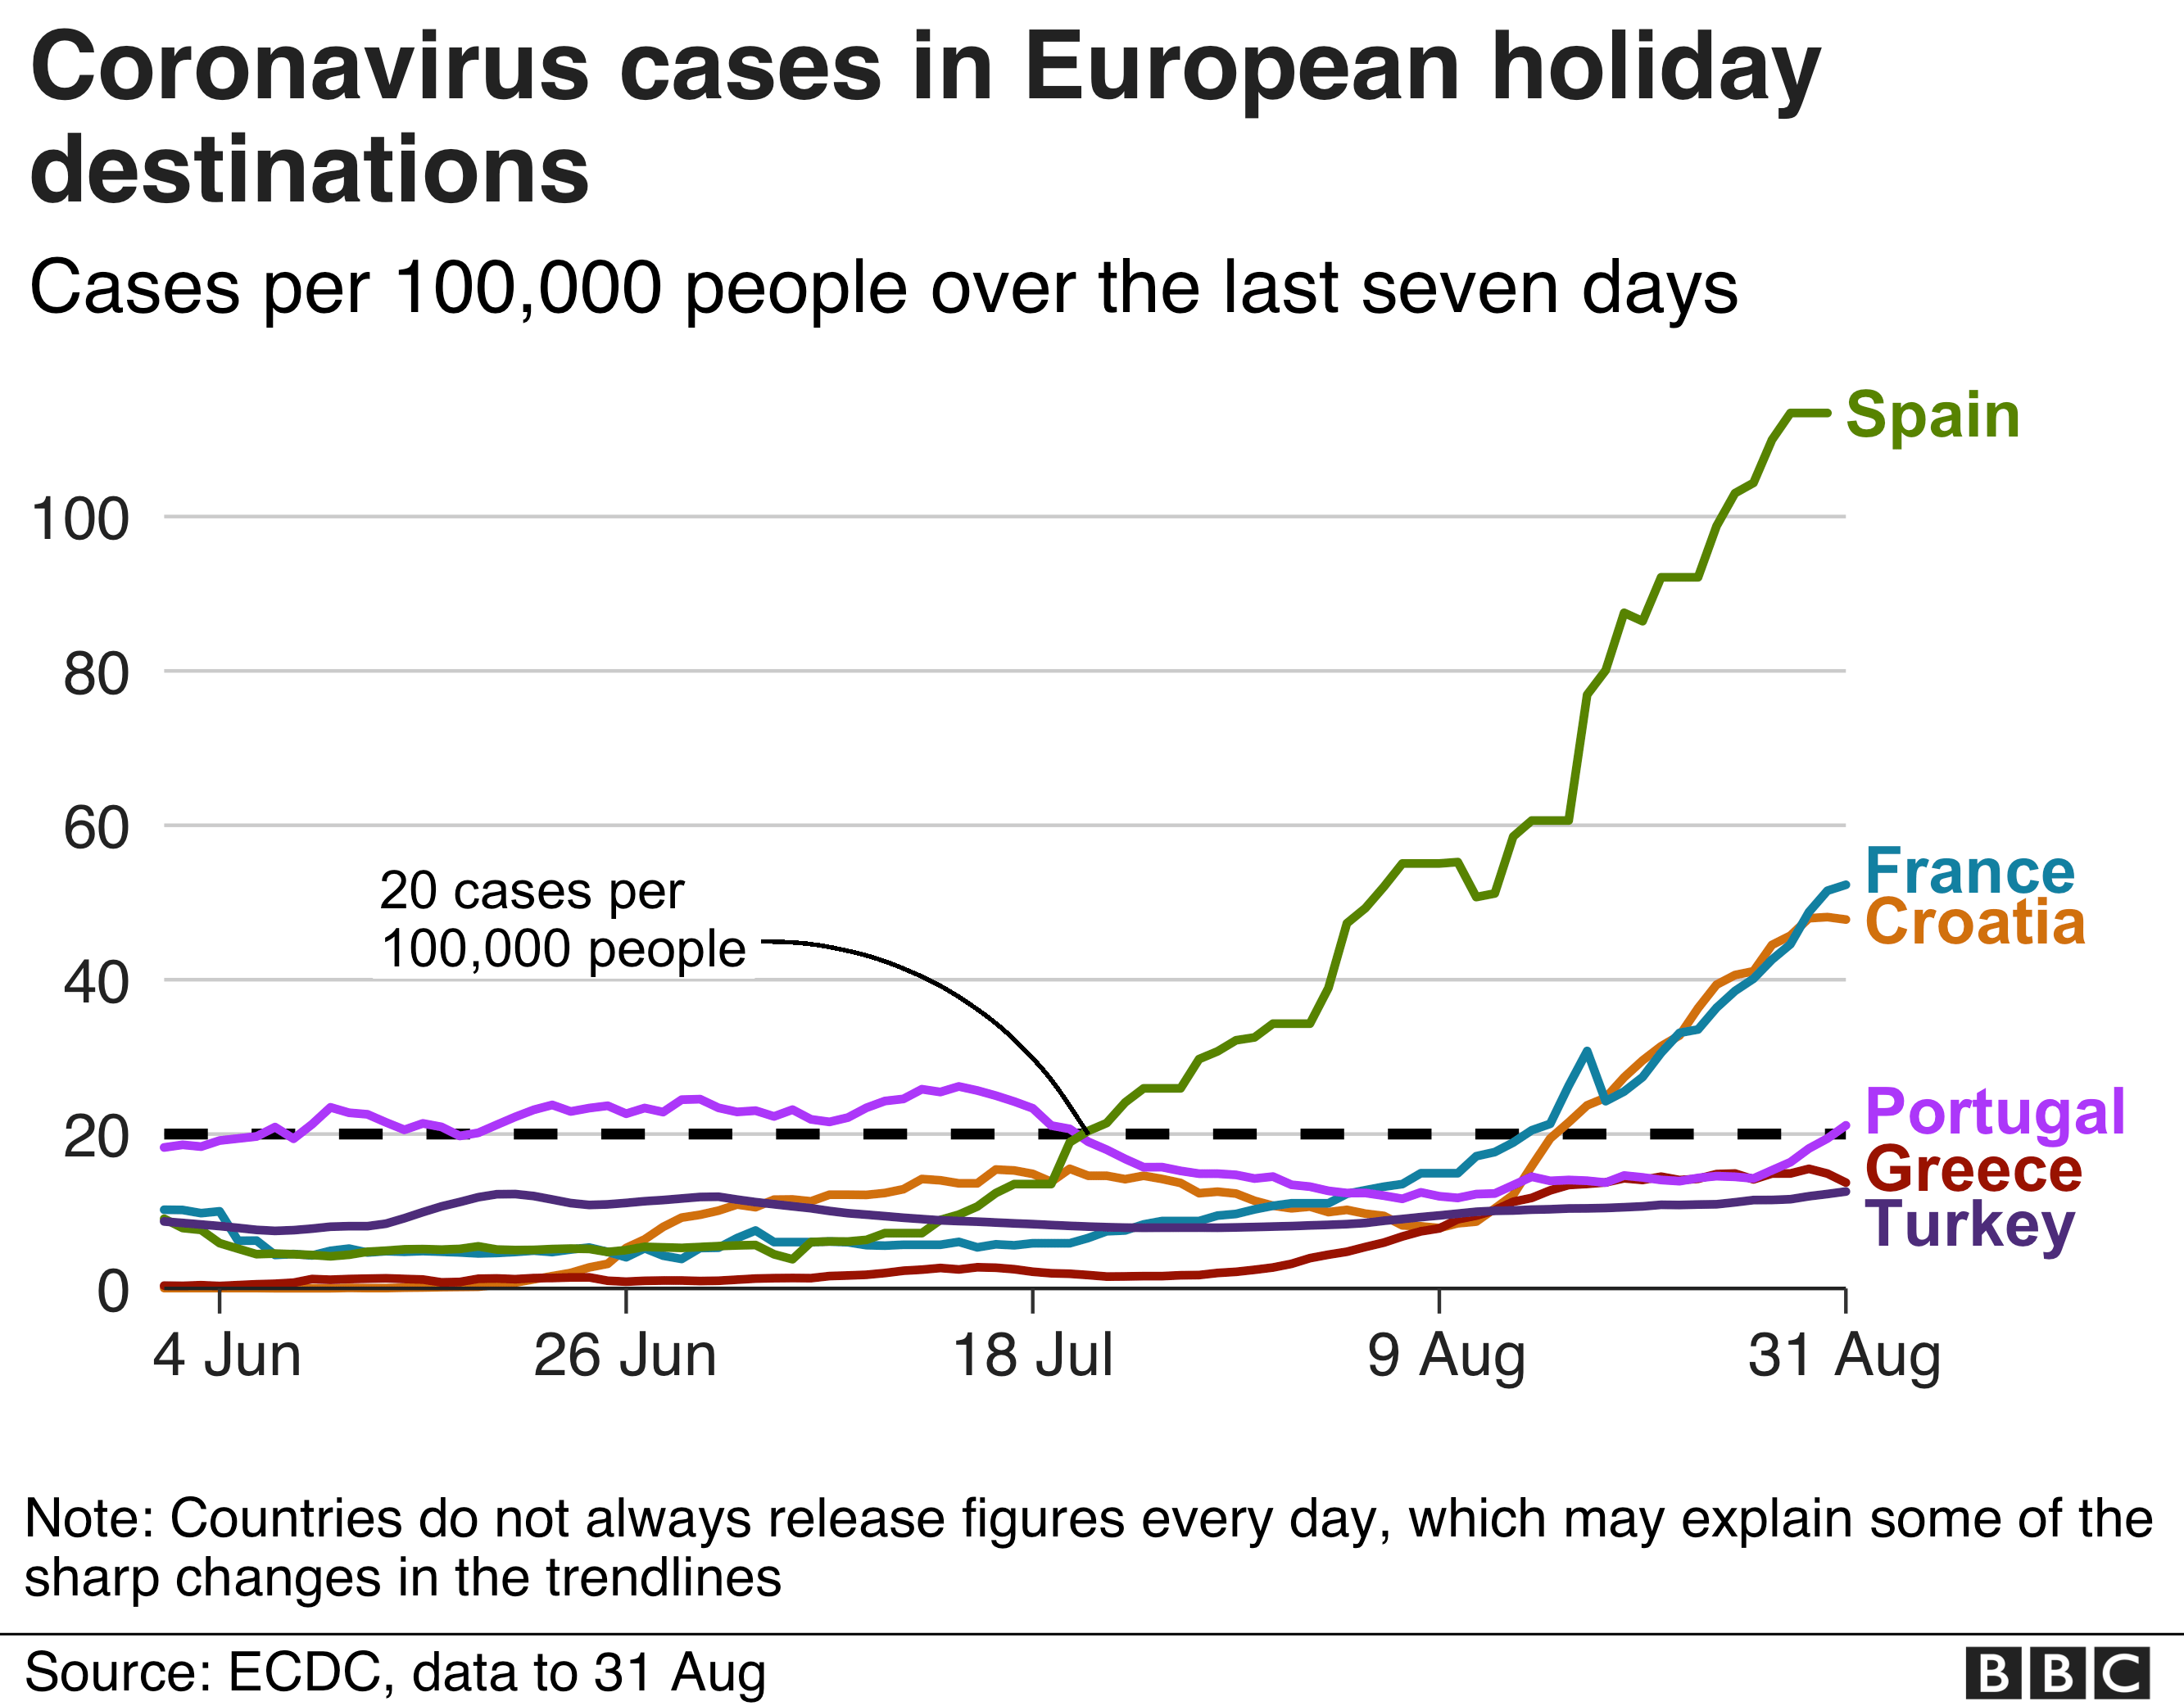 Rates of coronavirus per 100,000 people, 1 September